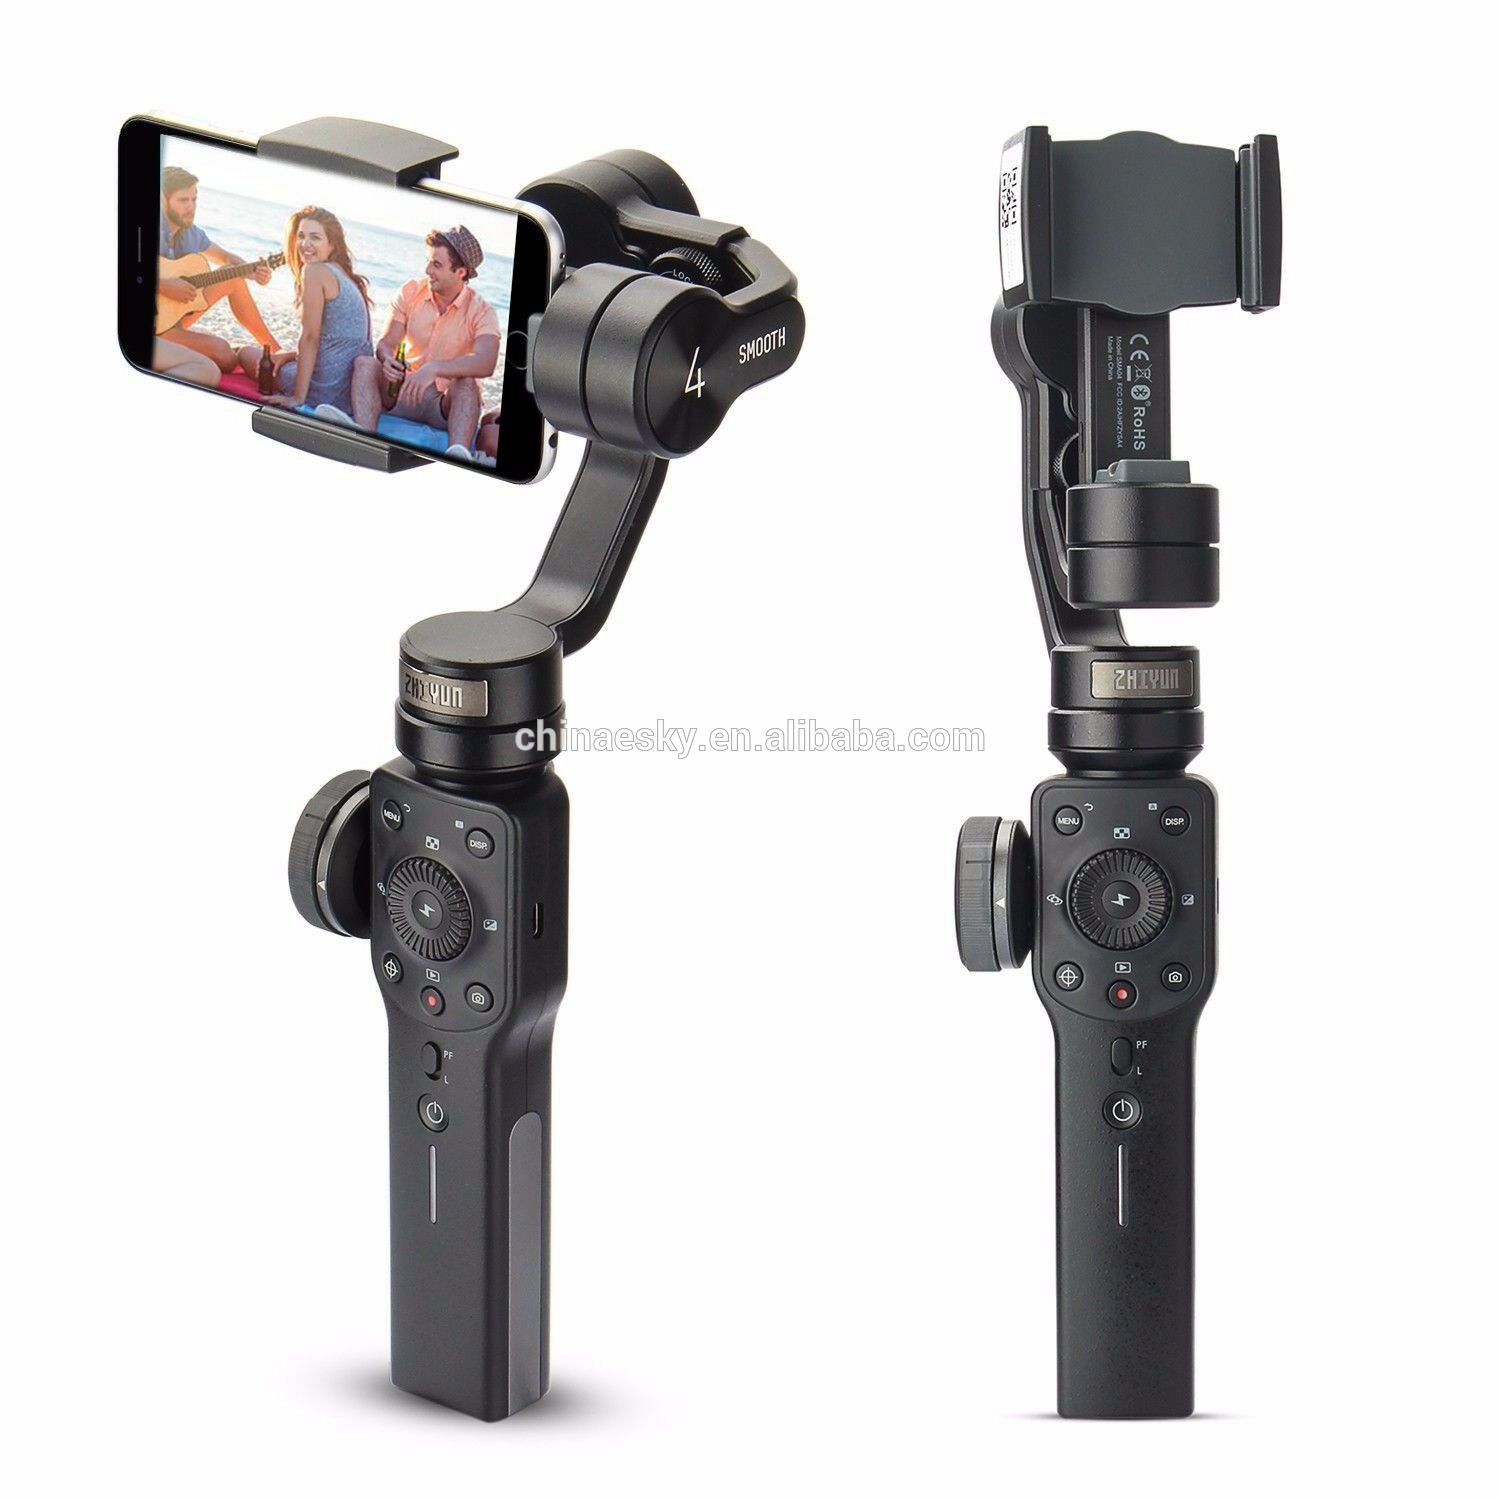 Zhiyun Glad 4 3-Axis Handheld Gimbal Stabilizer W/Focus Pull & Zoom Voor Ios Android Smartphone